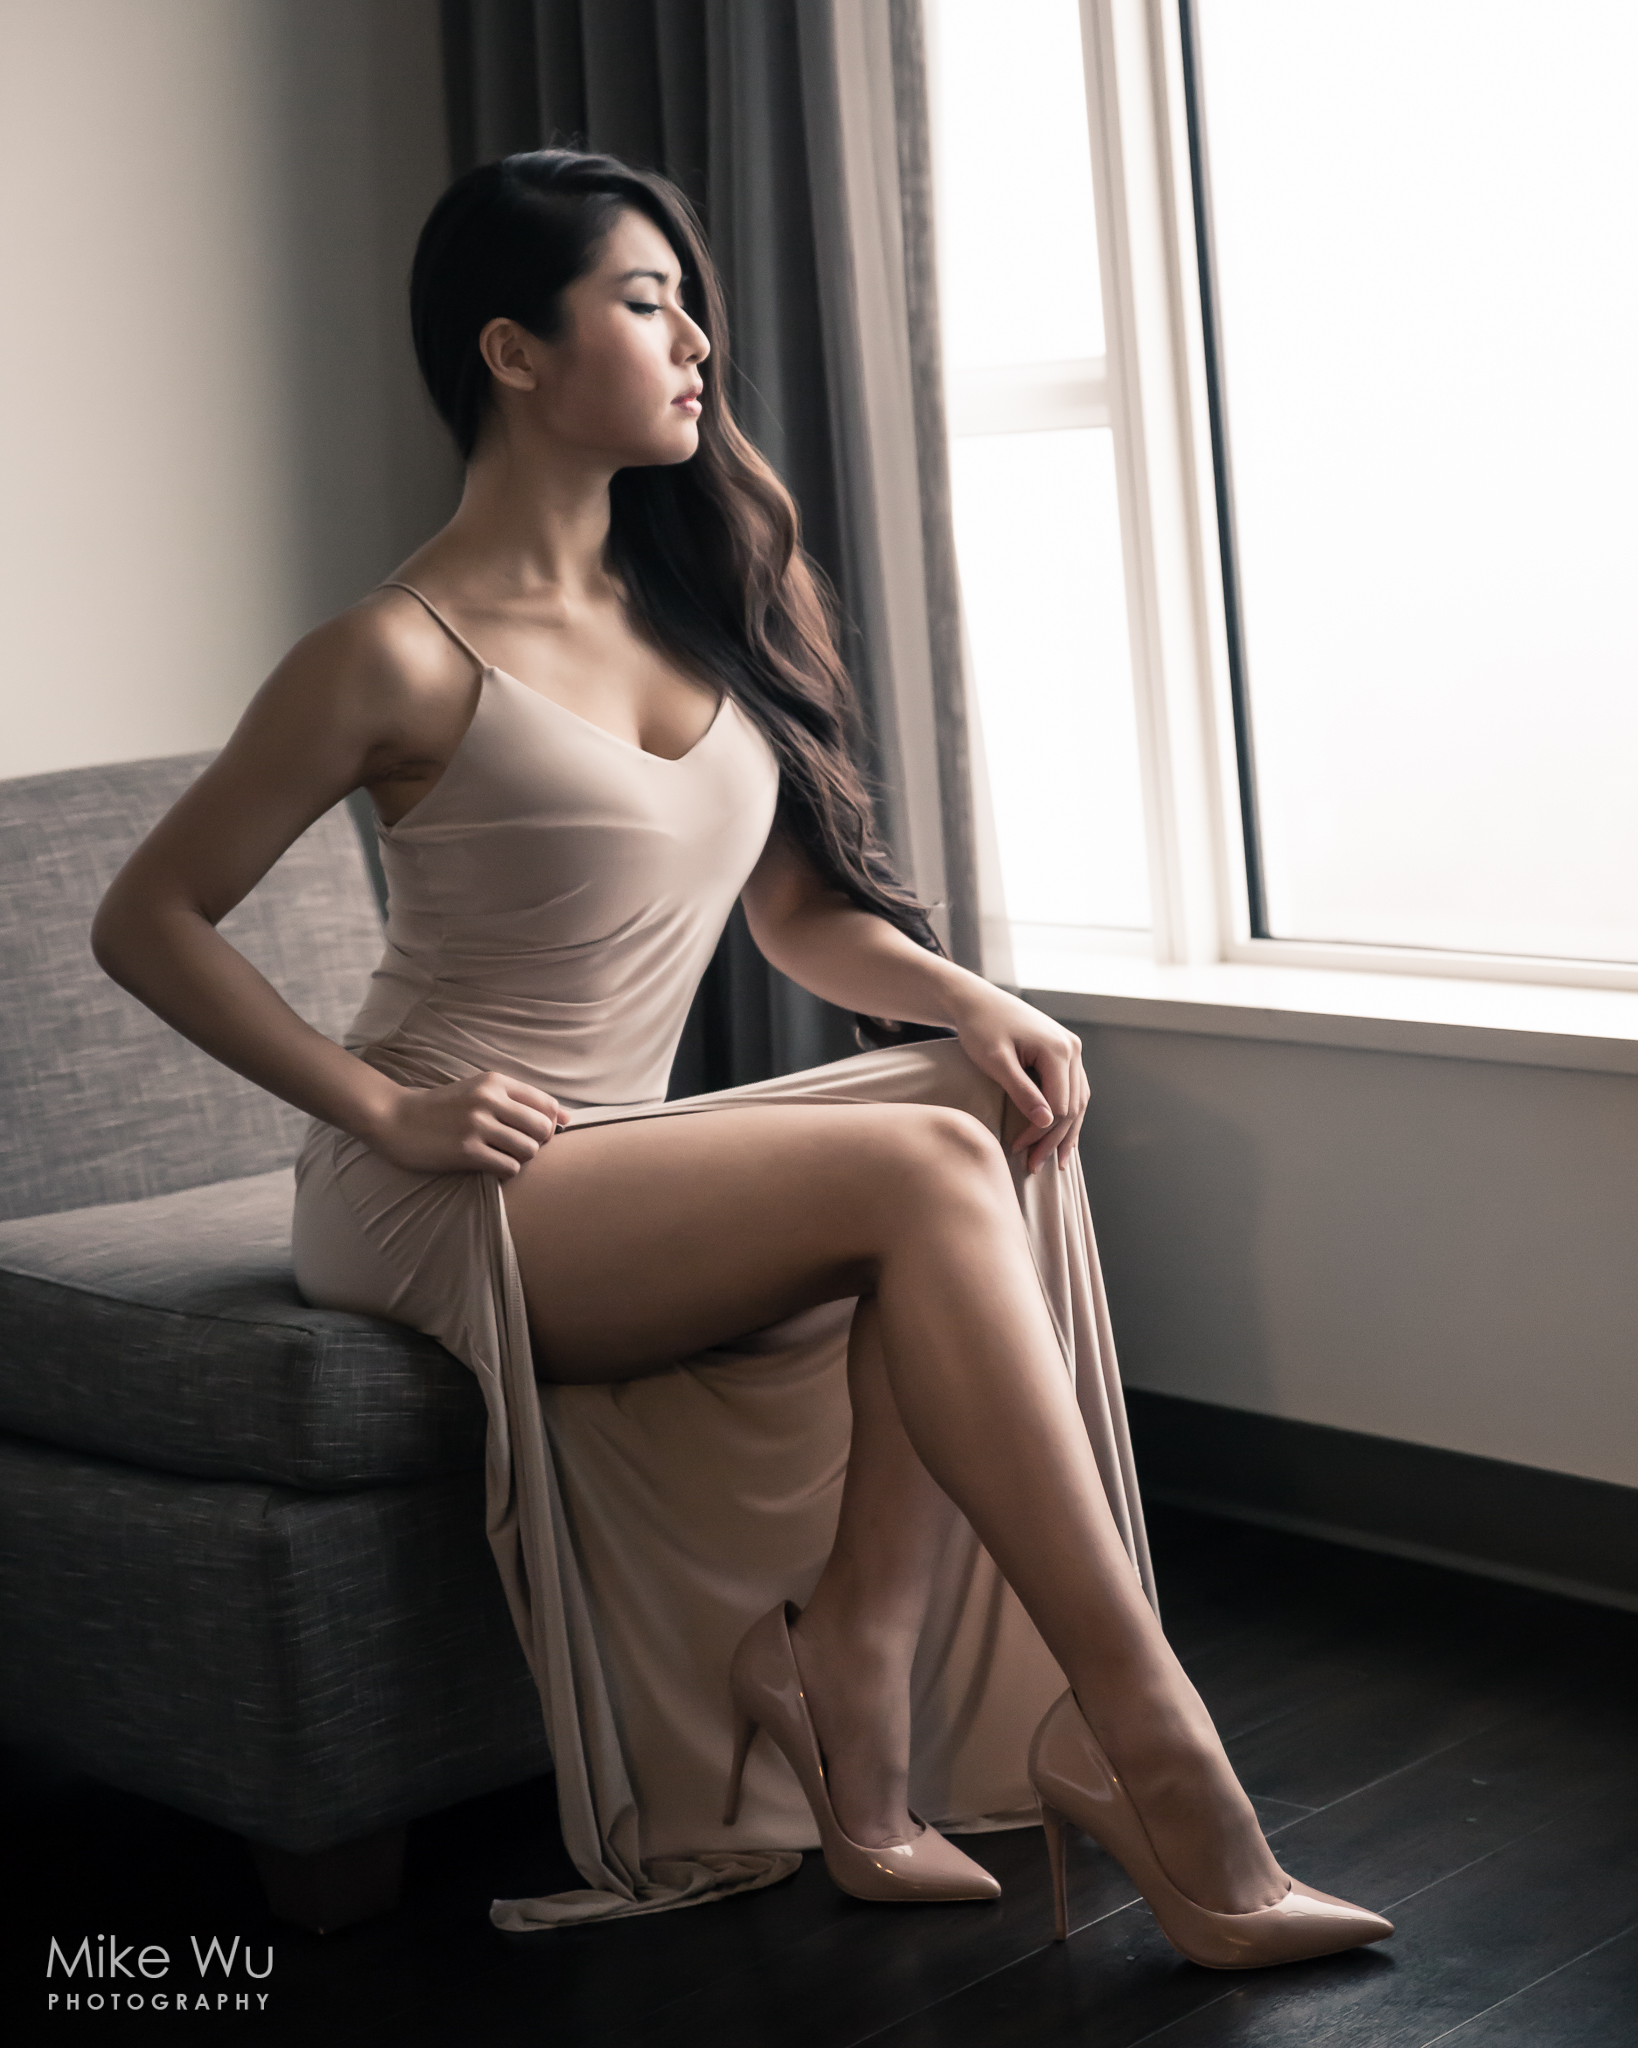 vancouver portrait photographer mike wu photography studio indoor asian chinese couch window beauty sitting heels dress makeup hairstyle natural